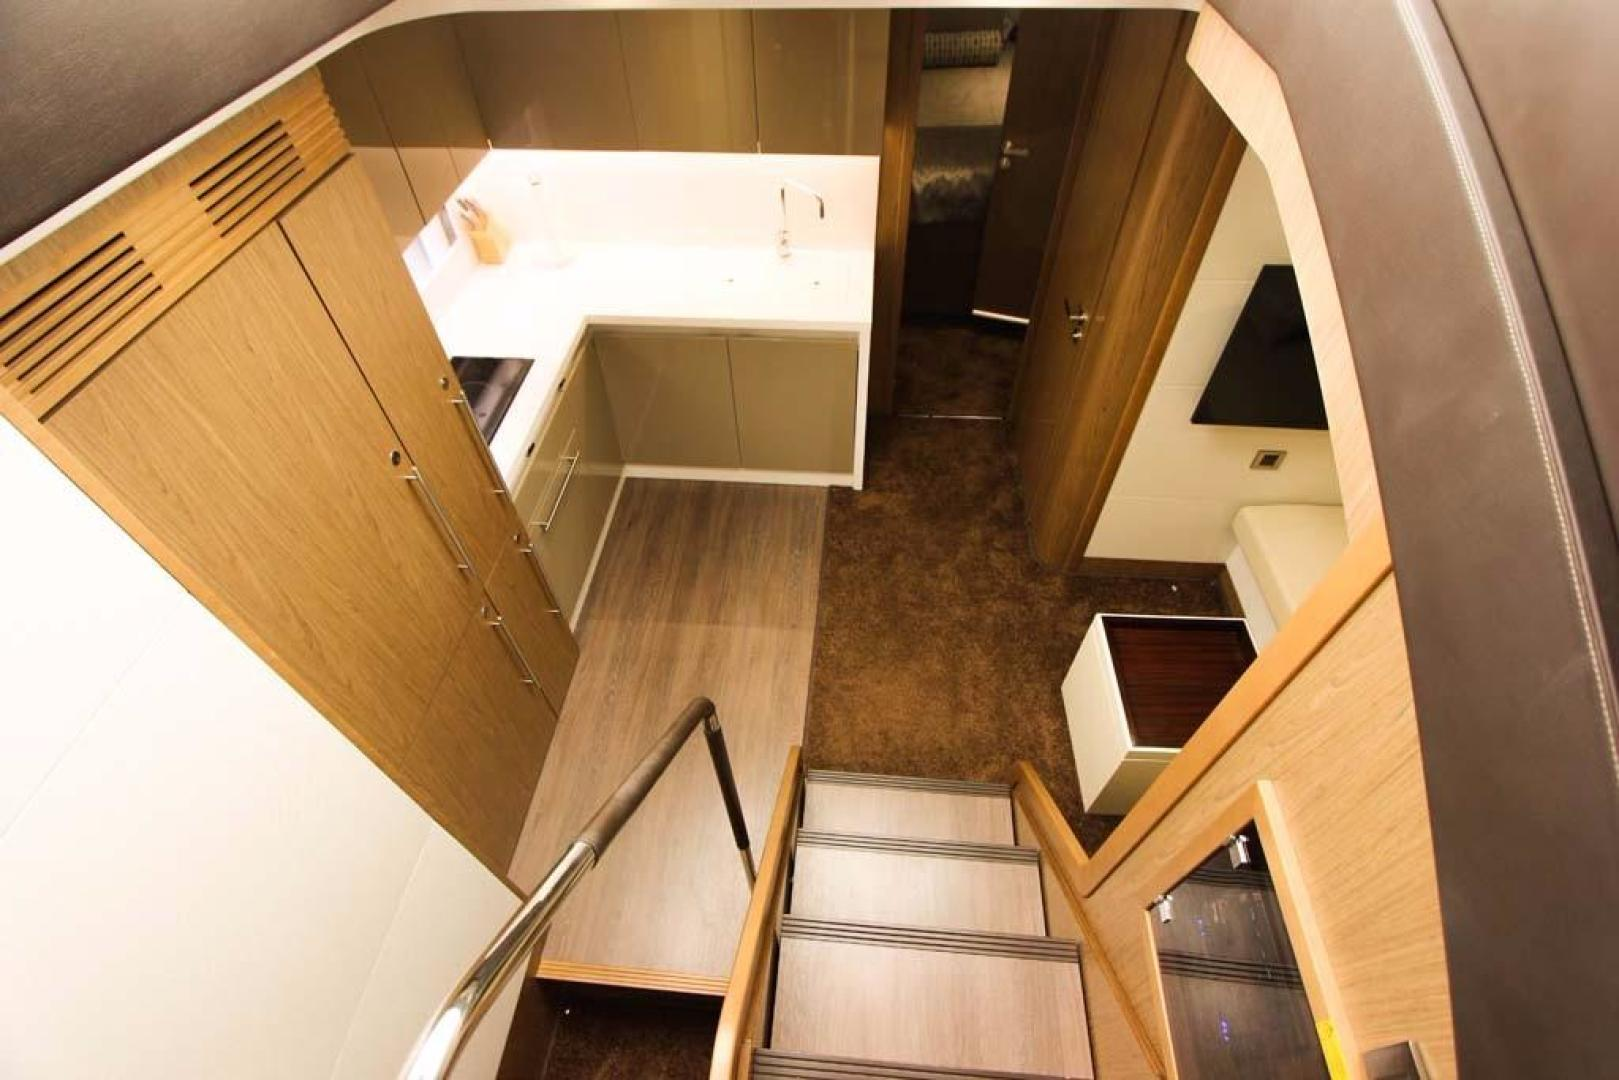 Beneteau-49 GT 2014 -Key Biscayne-Florida-United States-Stairs to Lower Salon-918816 | Thumbnail